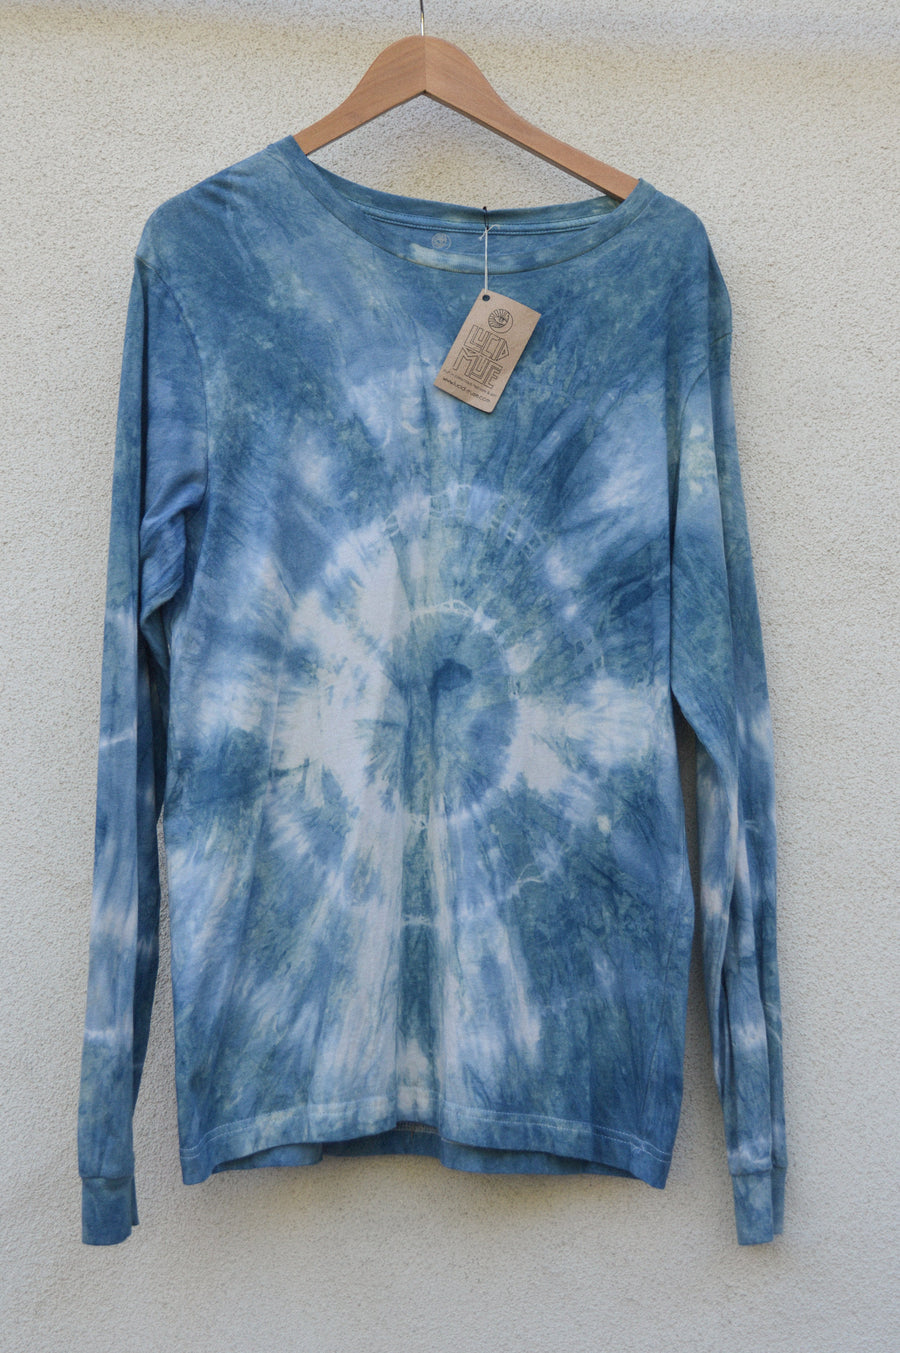 Indigo Ripples Naturally Dyed Long Sleeve Tee || gift for her, natural dye, tie dye, tye dye, eco friendly, sustainable, shibori, boho